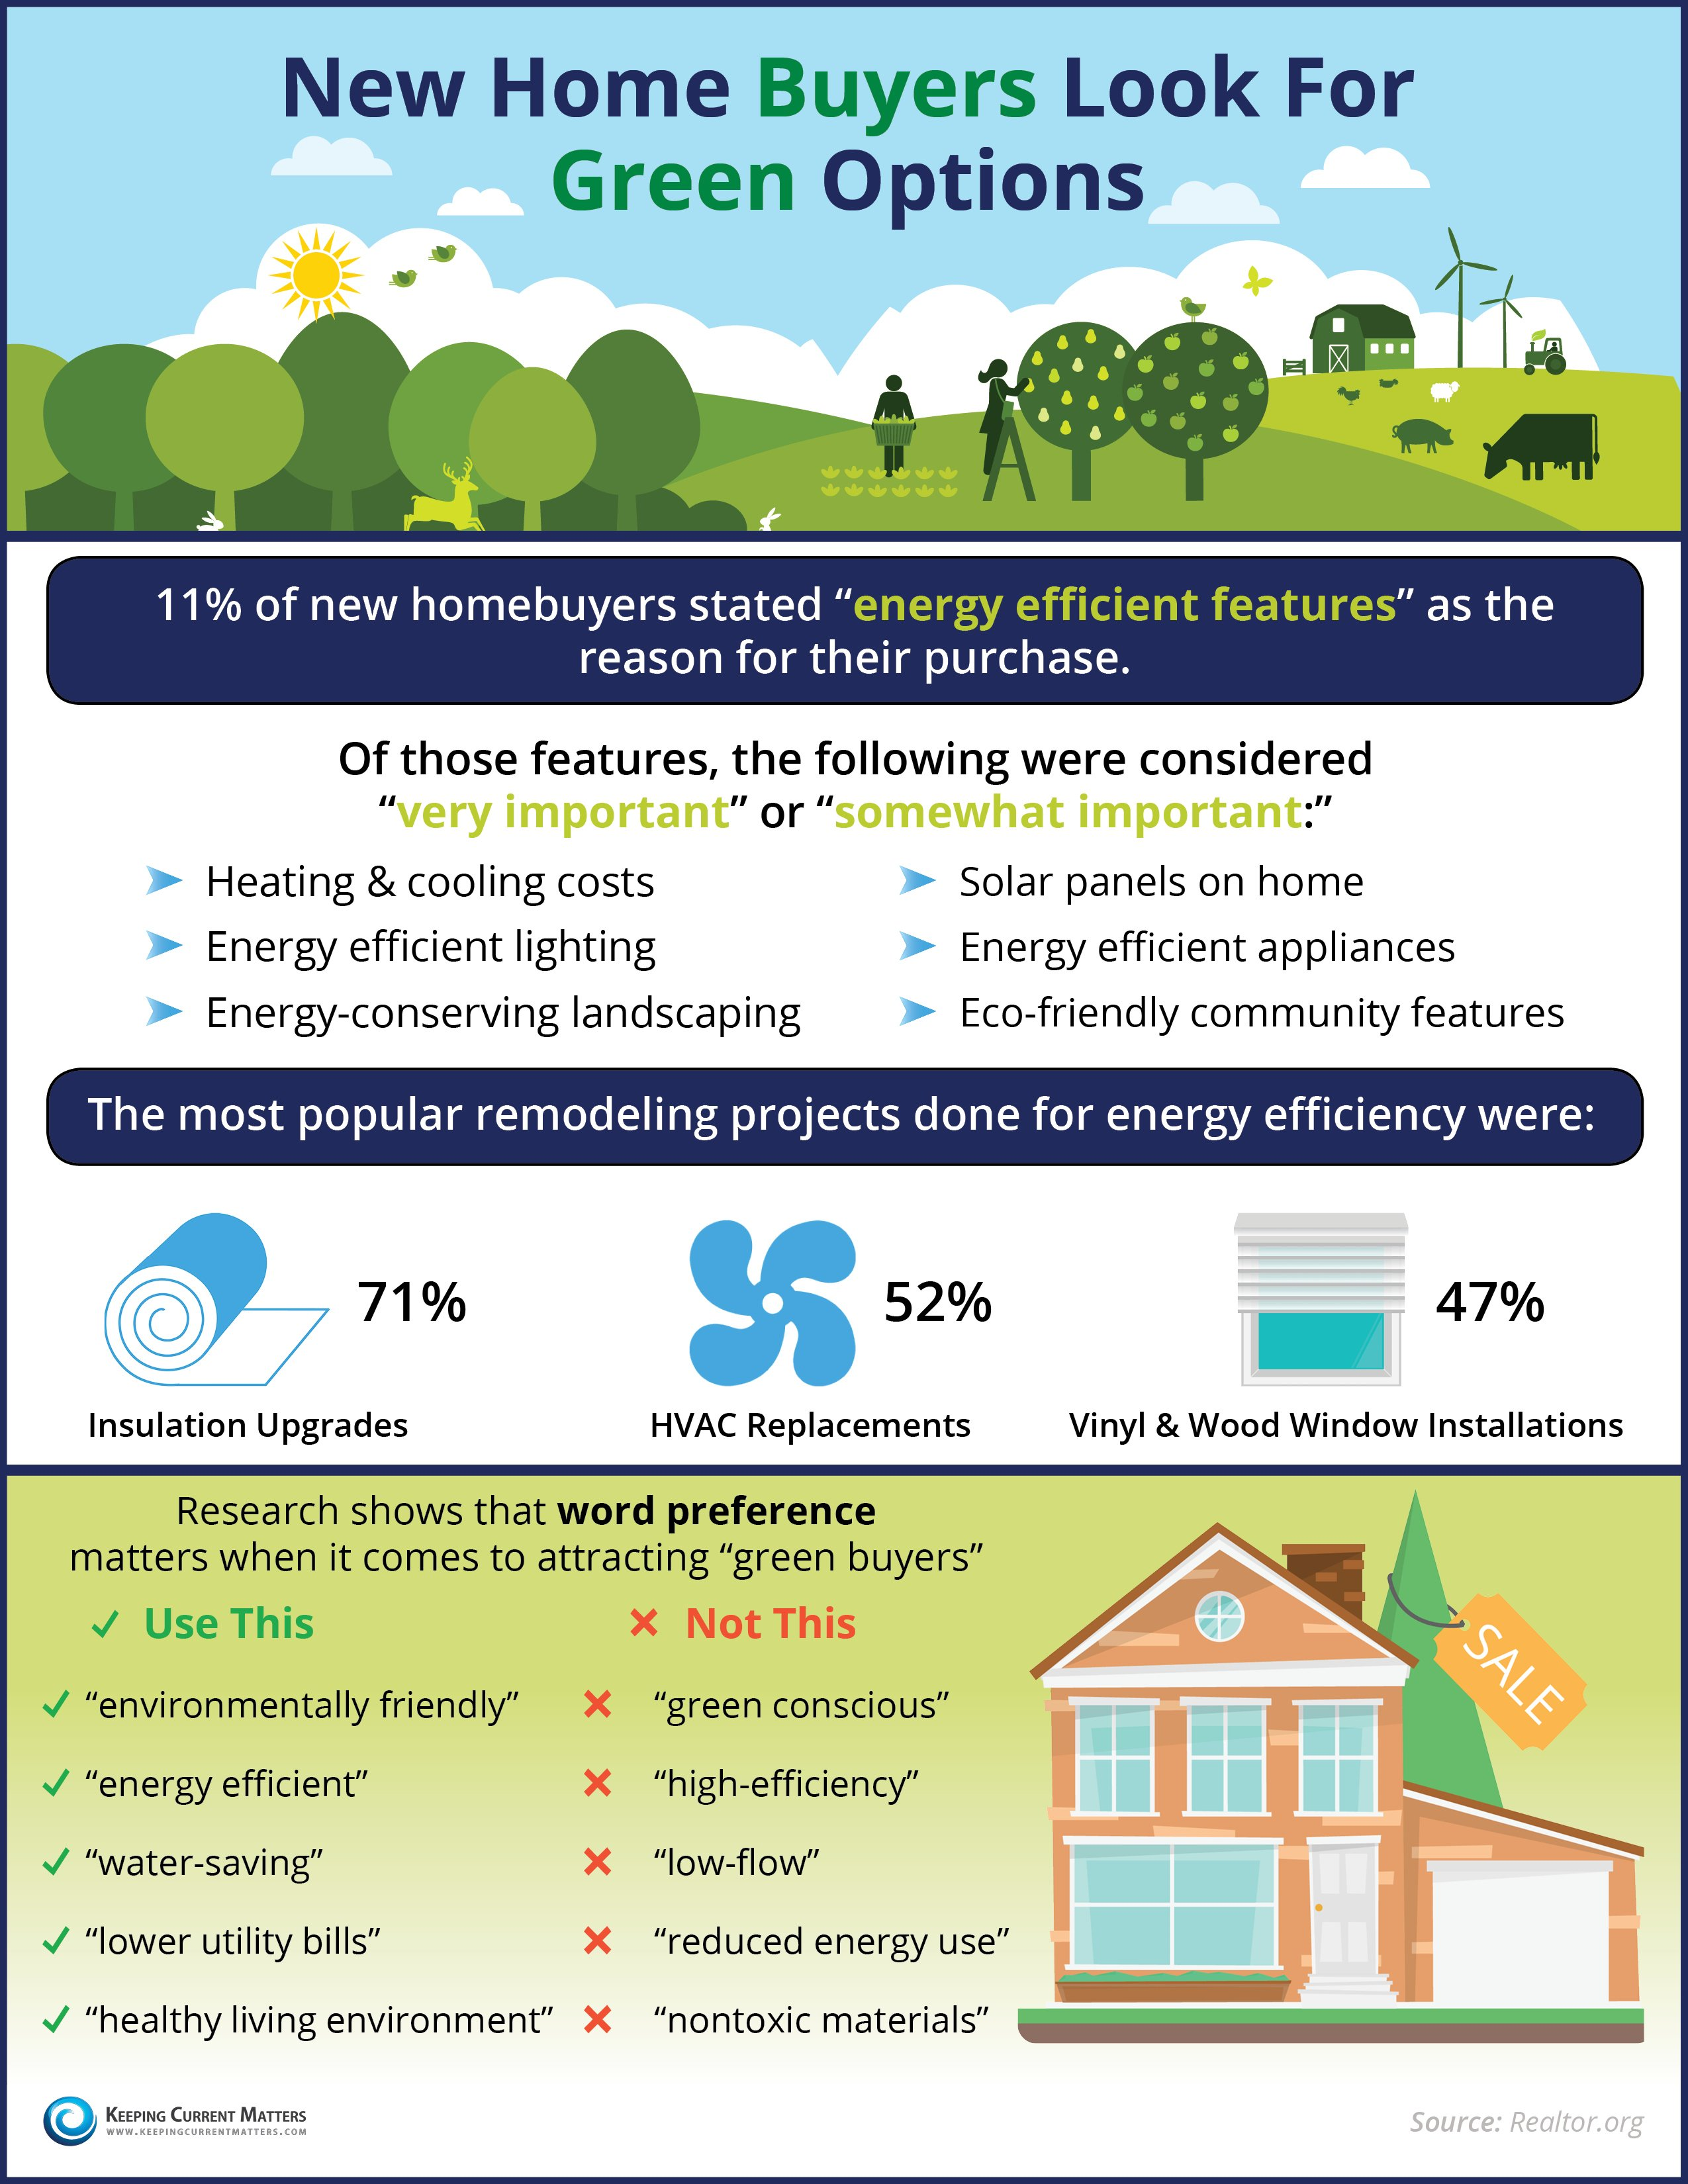 New Home Buyers Look For Green Options | Keeping Current Matters